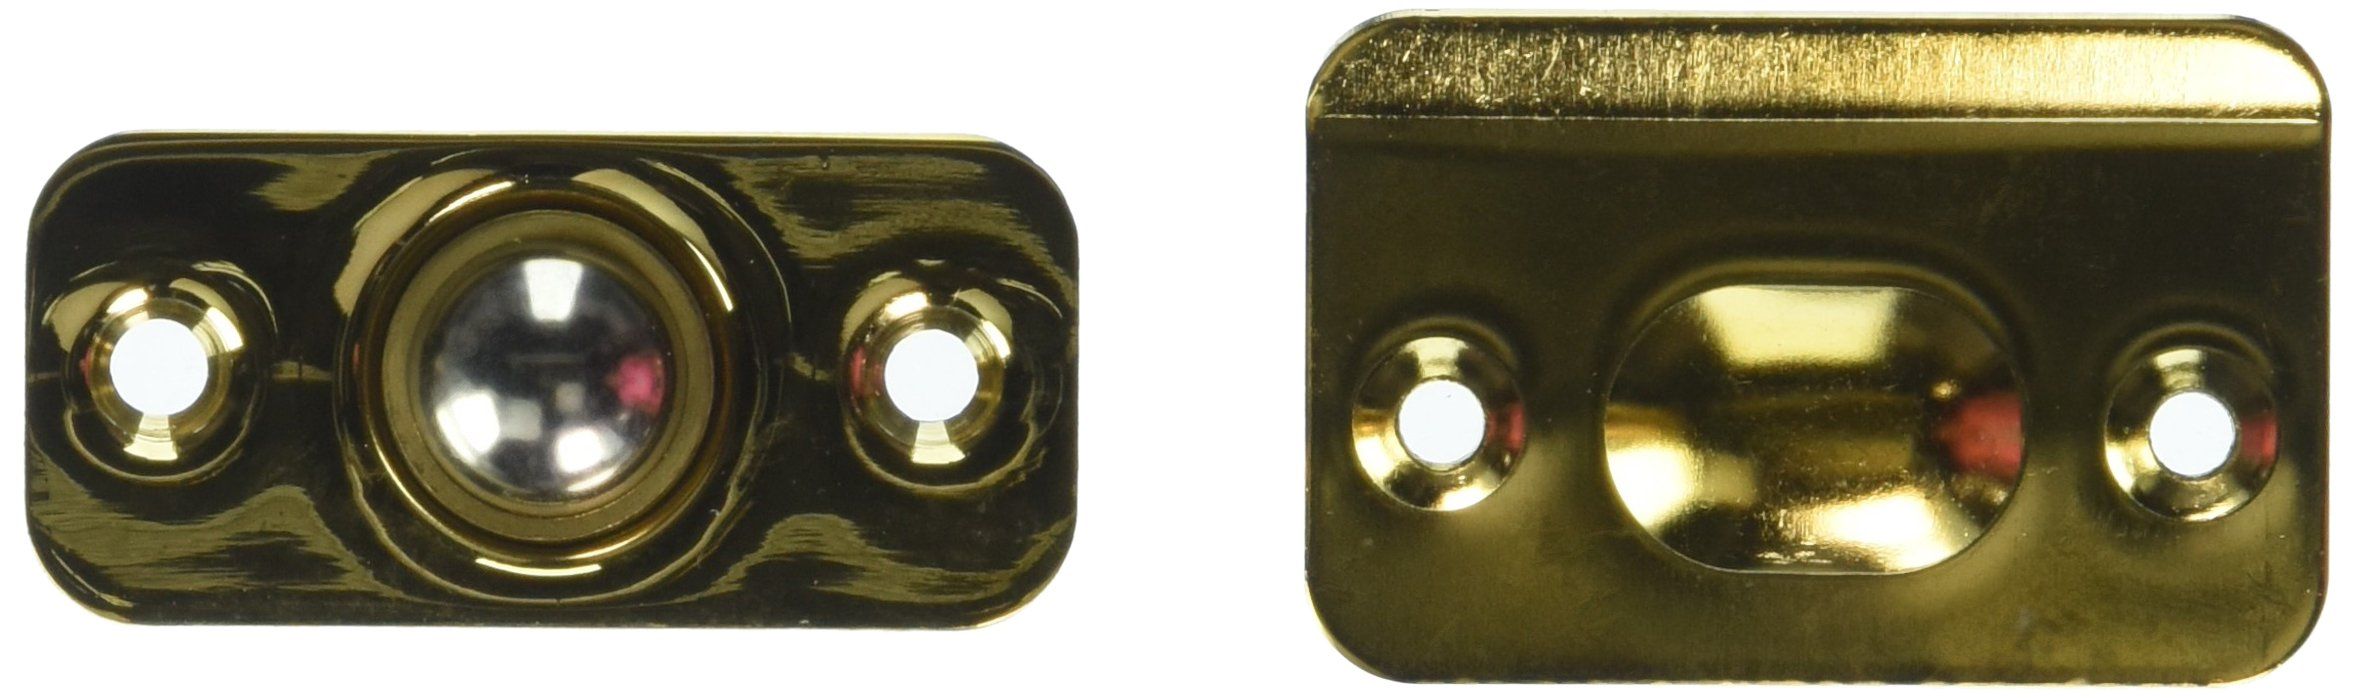 Deltana BC218RCR003 Round Corners Adjustable Up to 3/8-Inch Solid Brass Ball Catch